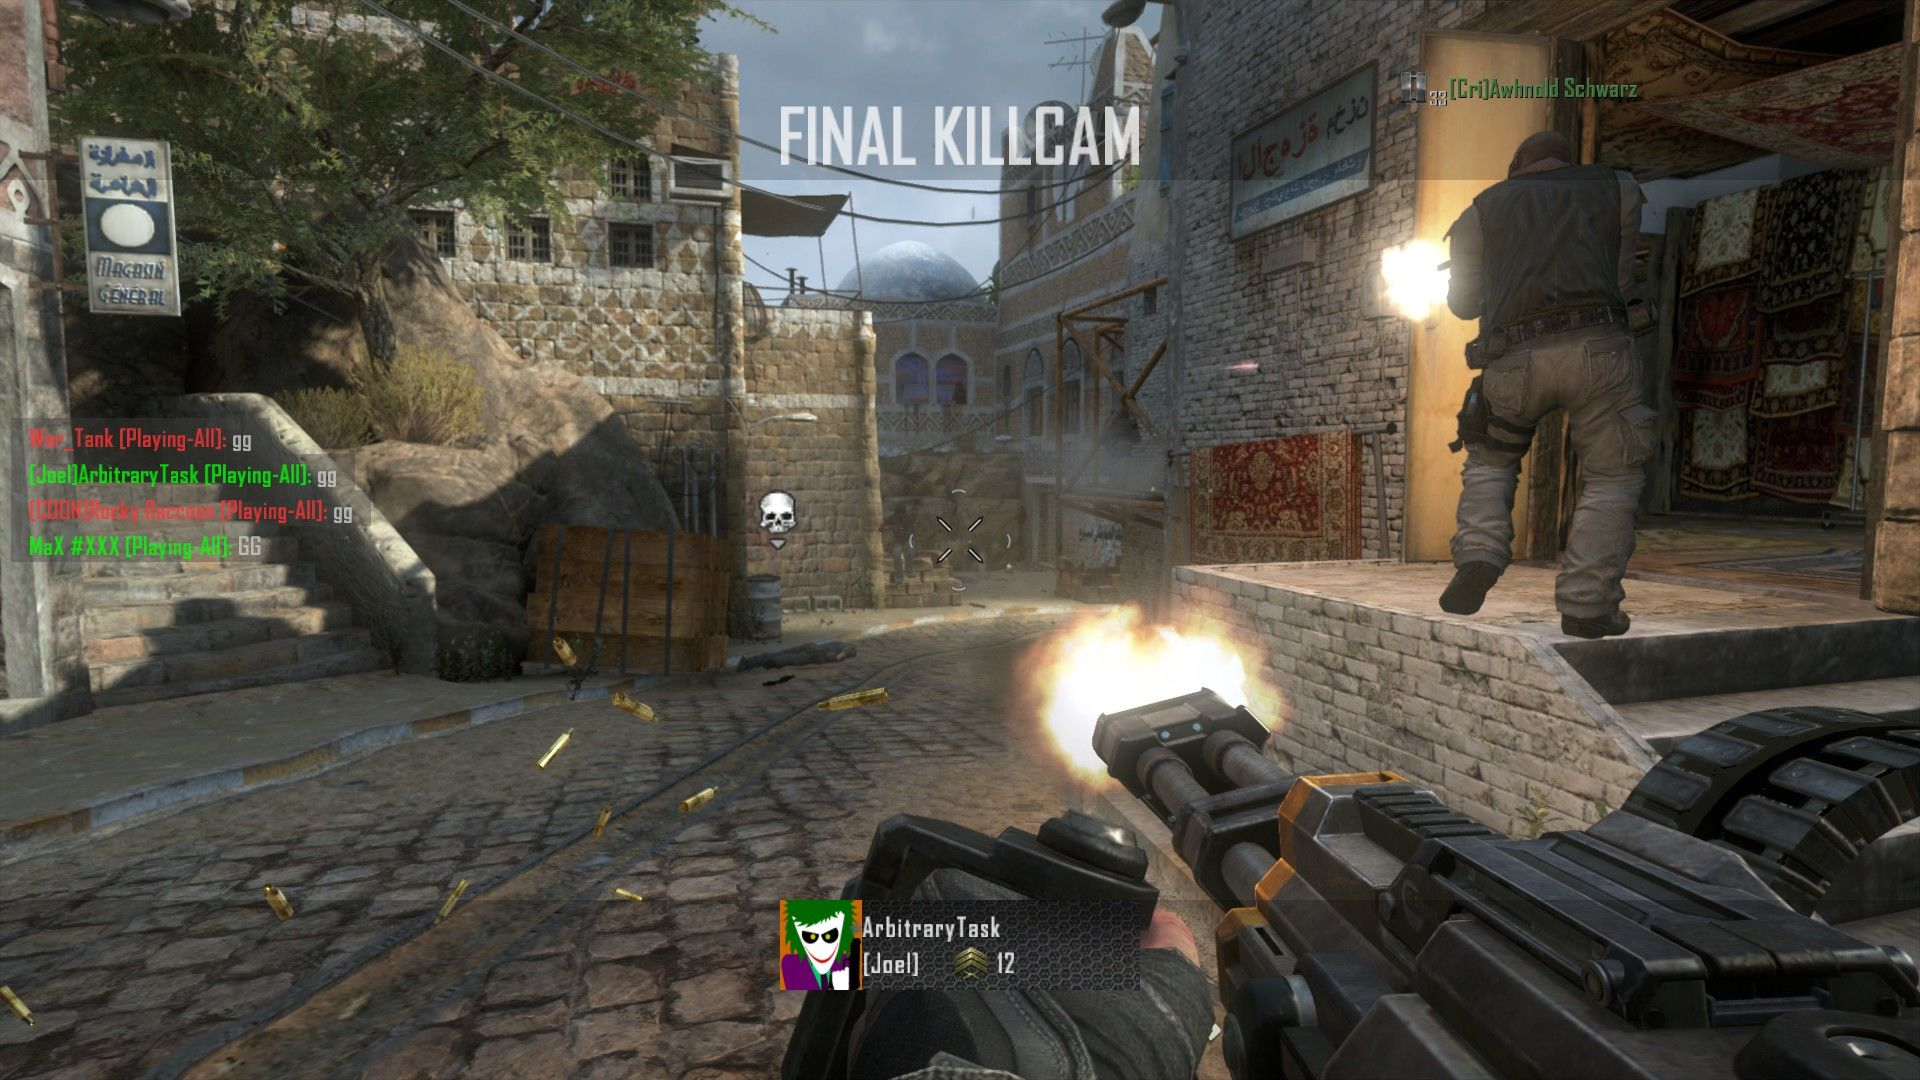 Call of Duty: Black Ops II Windows Death Machine spinning up!